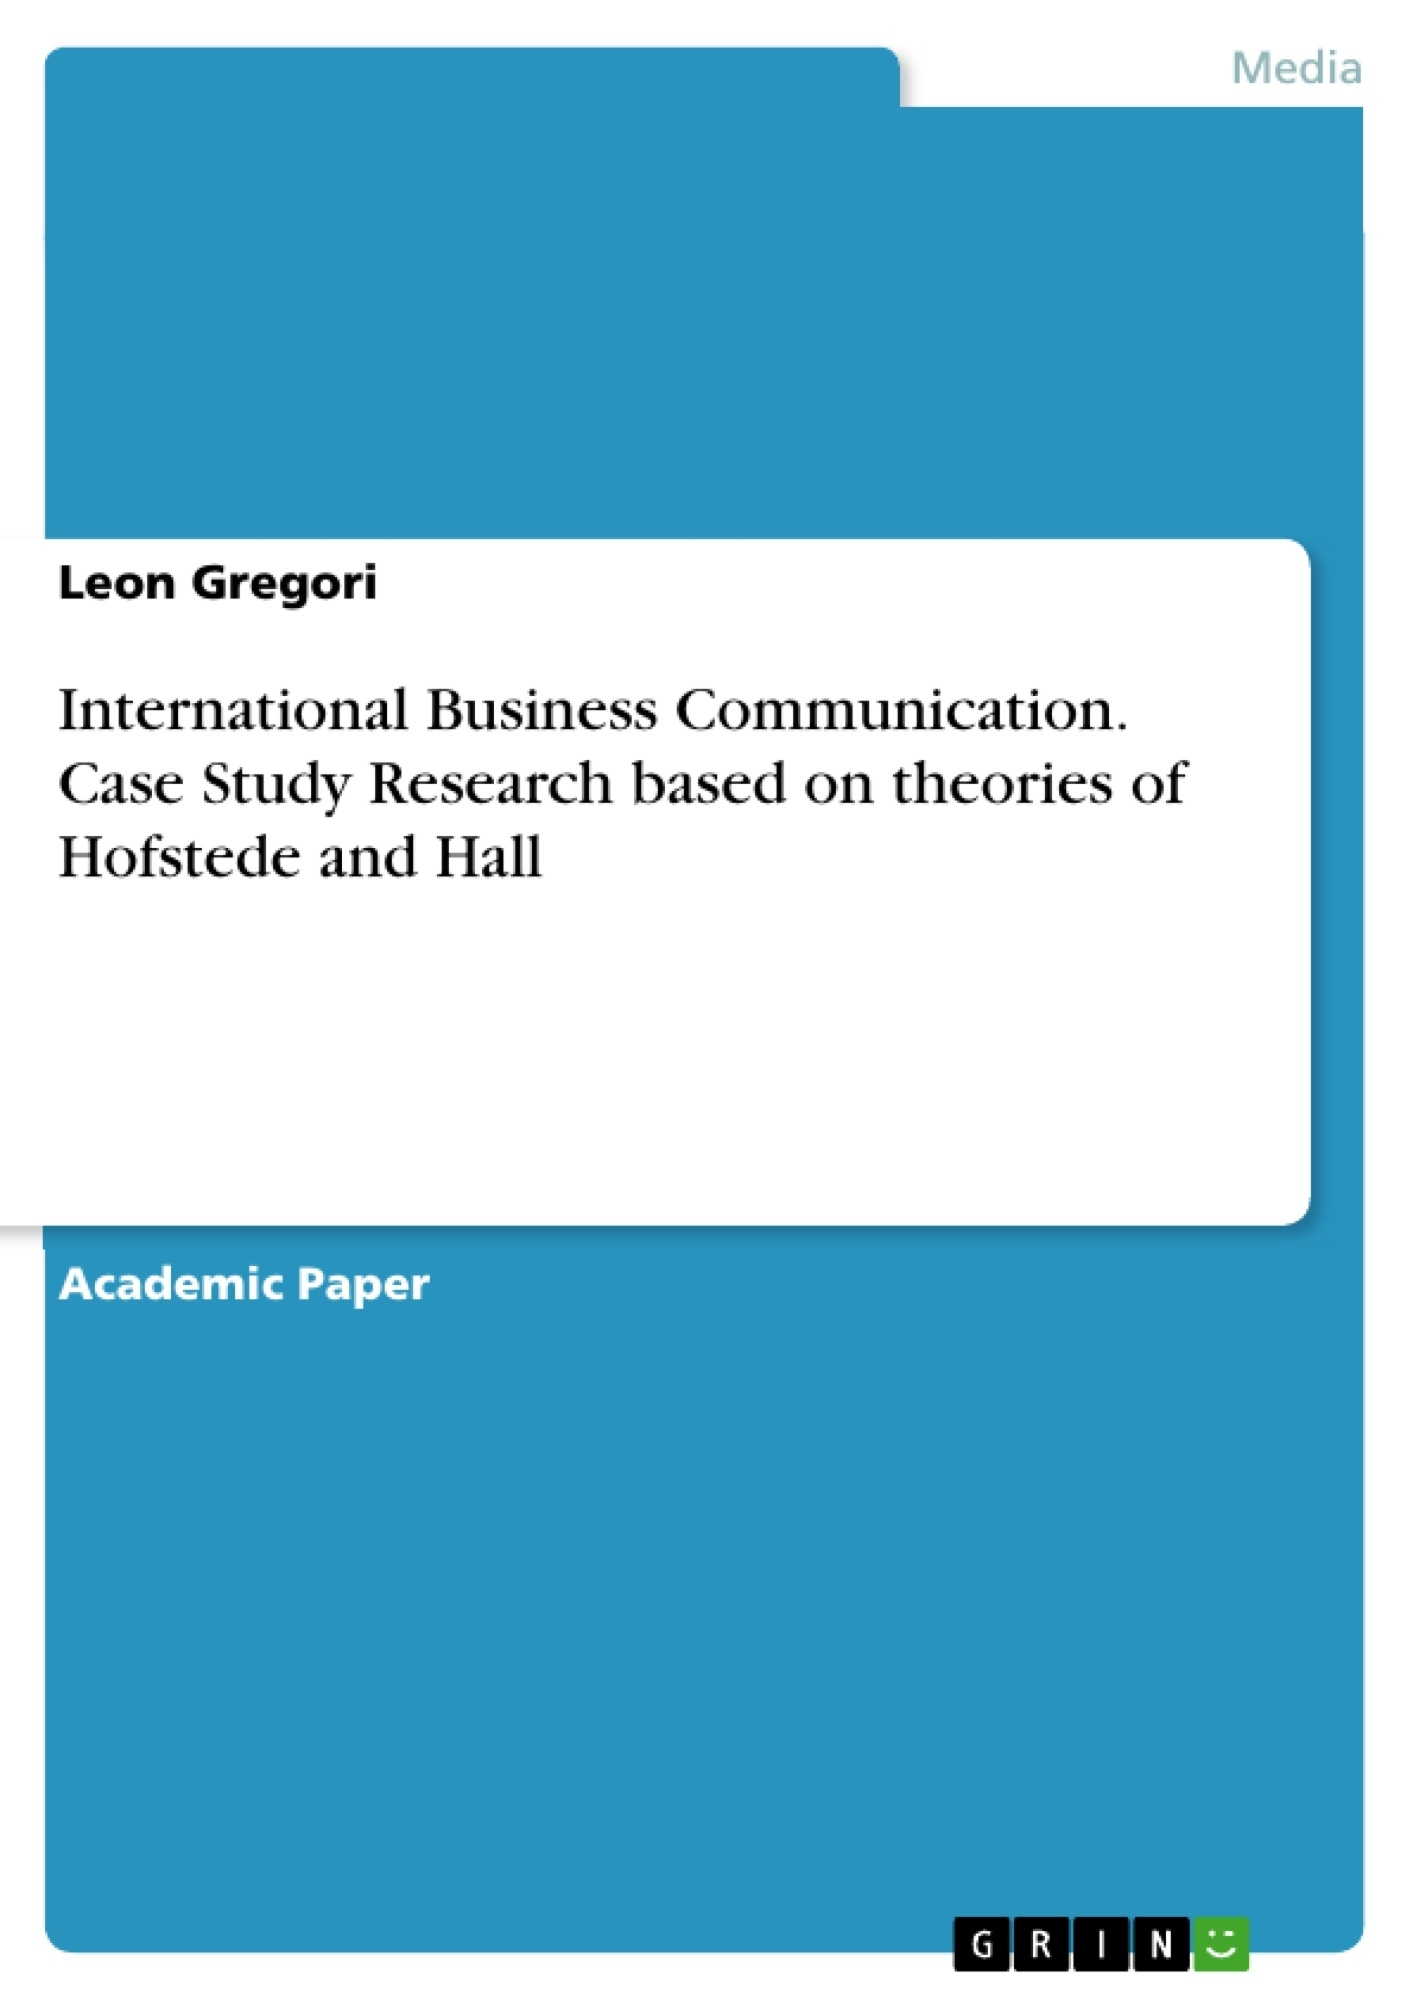 Title: International Business Communication. Case Study Research based on theories of Hofstede and Hall